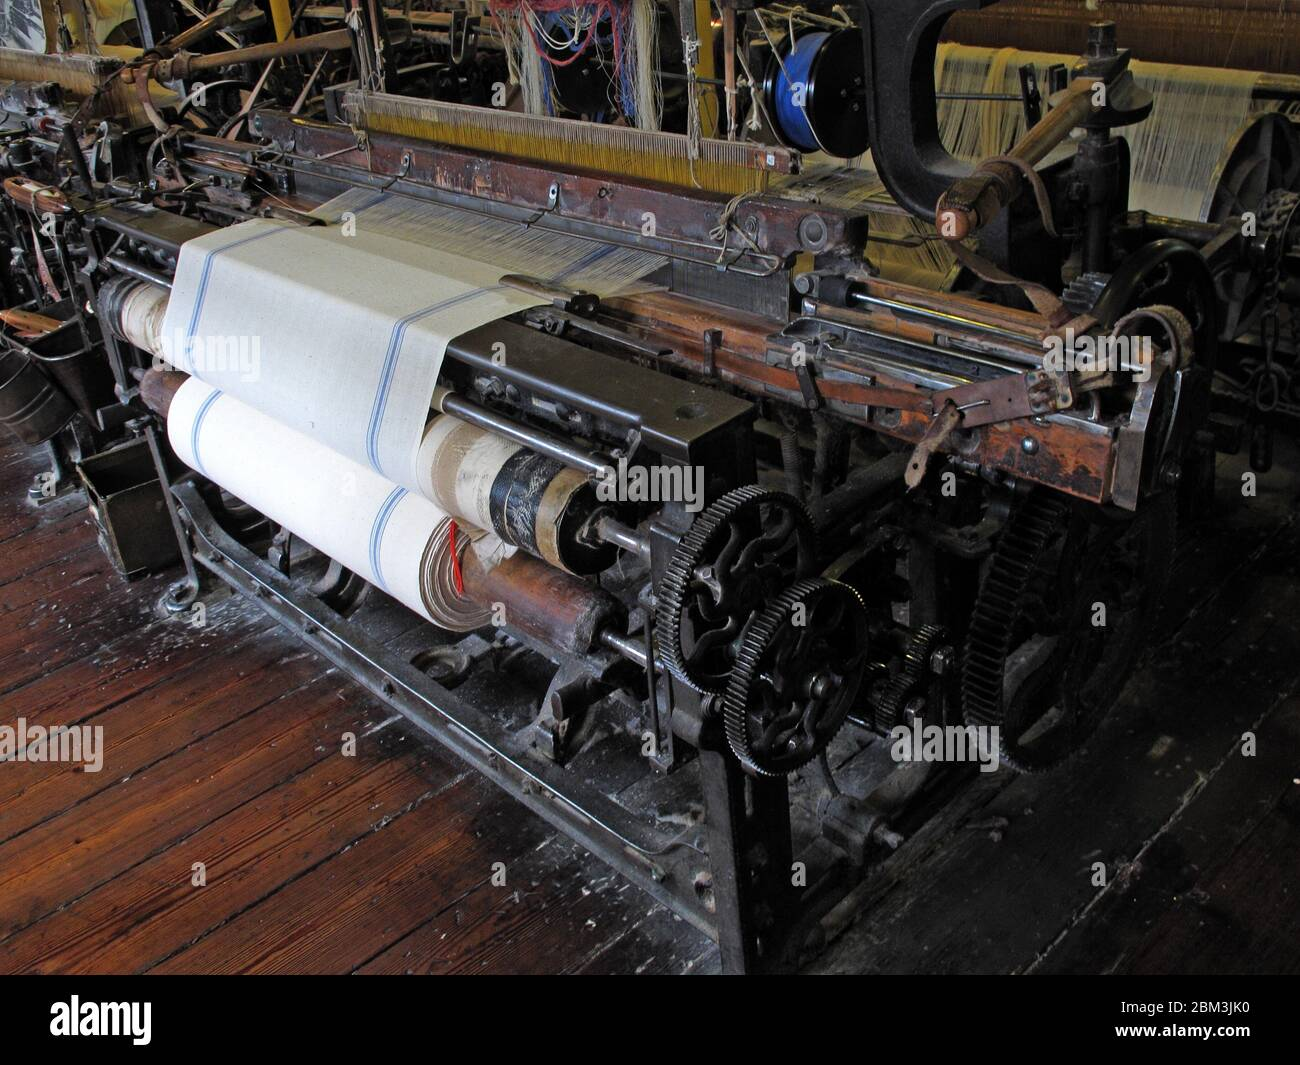 GoTonySmith,HotpixUK,@HotpixUK,Manchester,industry,factory,mill,history,machines,cloth,manufacture,Lancashire,Victorian,mass production,Industrial Revolution,Textile manufacturing,Manchester factory,manufacturing cotton and cloth,cotton yarn,Cotton Mill,Cottonopolis,Inside a Manchester Cotton Mill,loom,making cotton cloth,making fabric